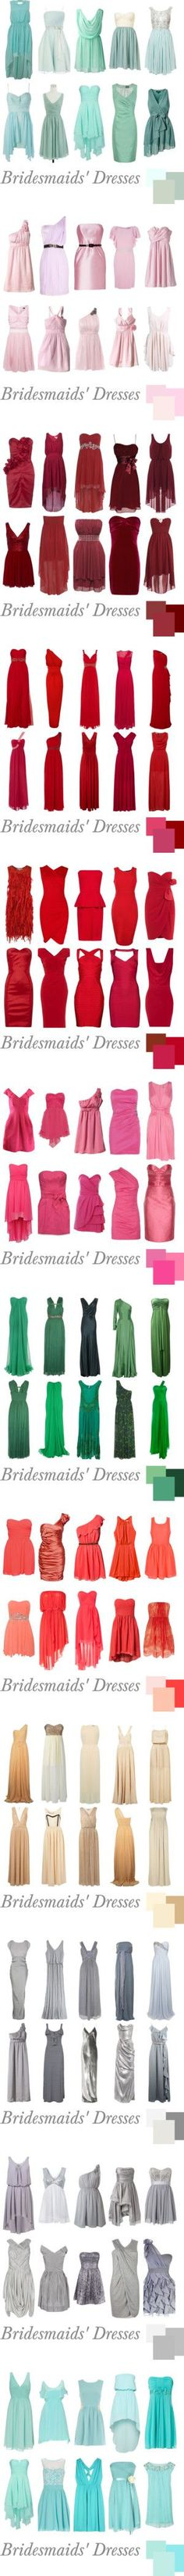 Bridesmaids-What look are you shooting for? - Weddingbee